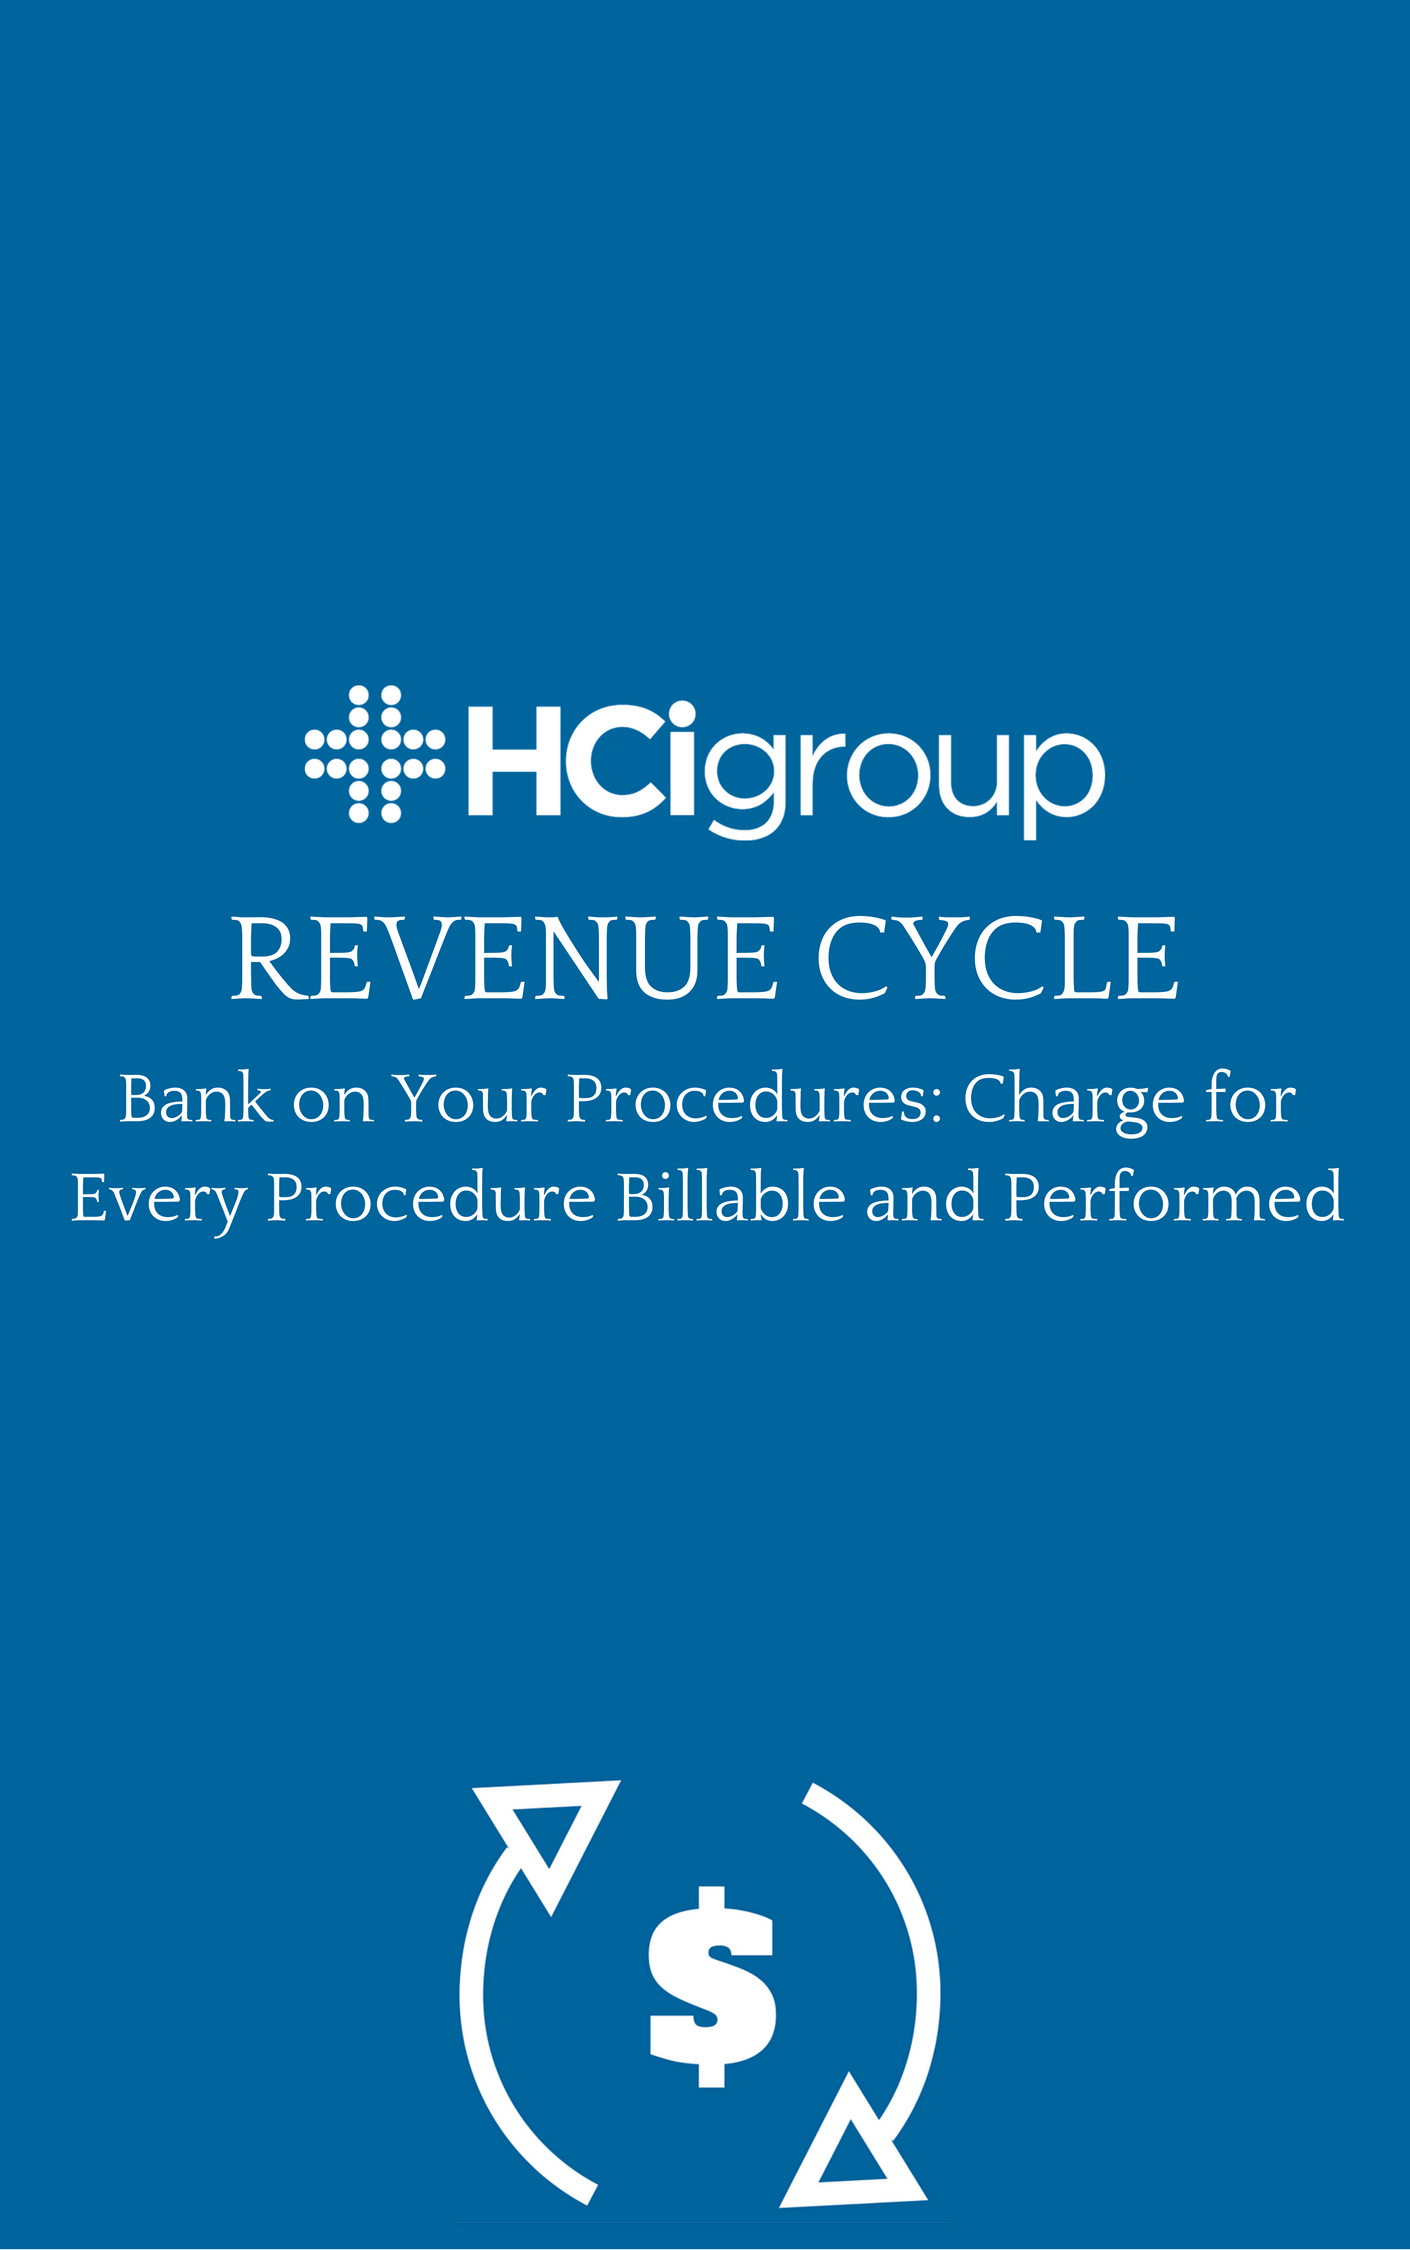 Revenue Cycle Management (RCM). Bank on your Procedures: Charge for every procedure billable and performed.